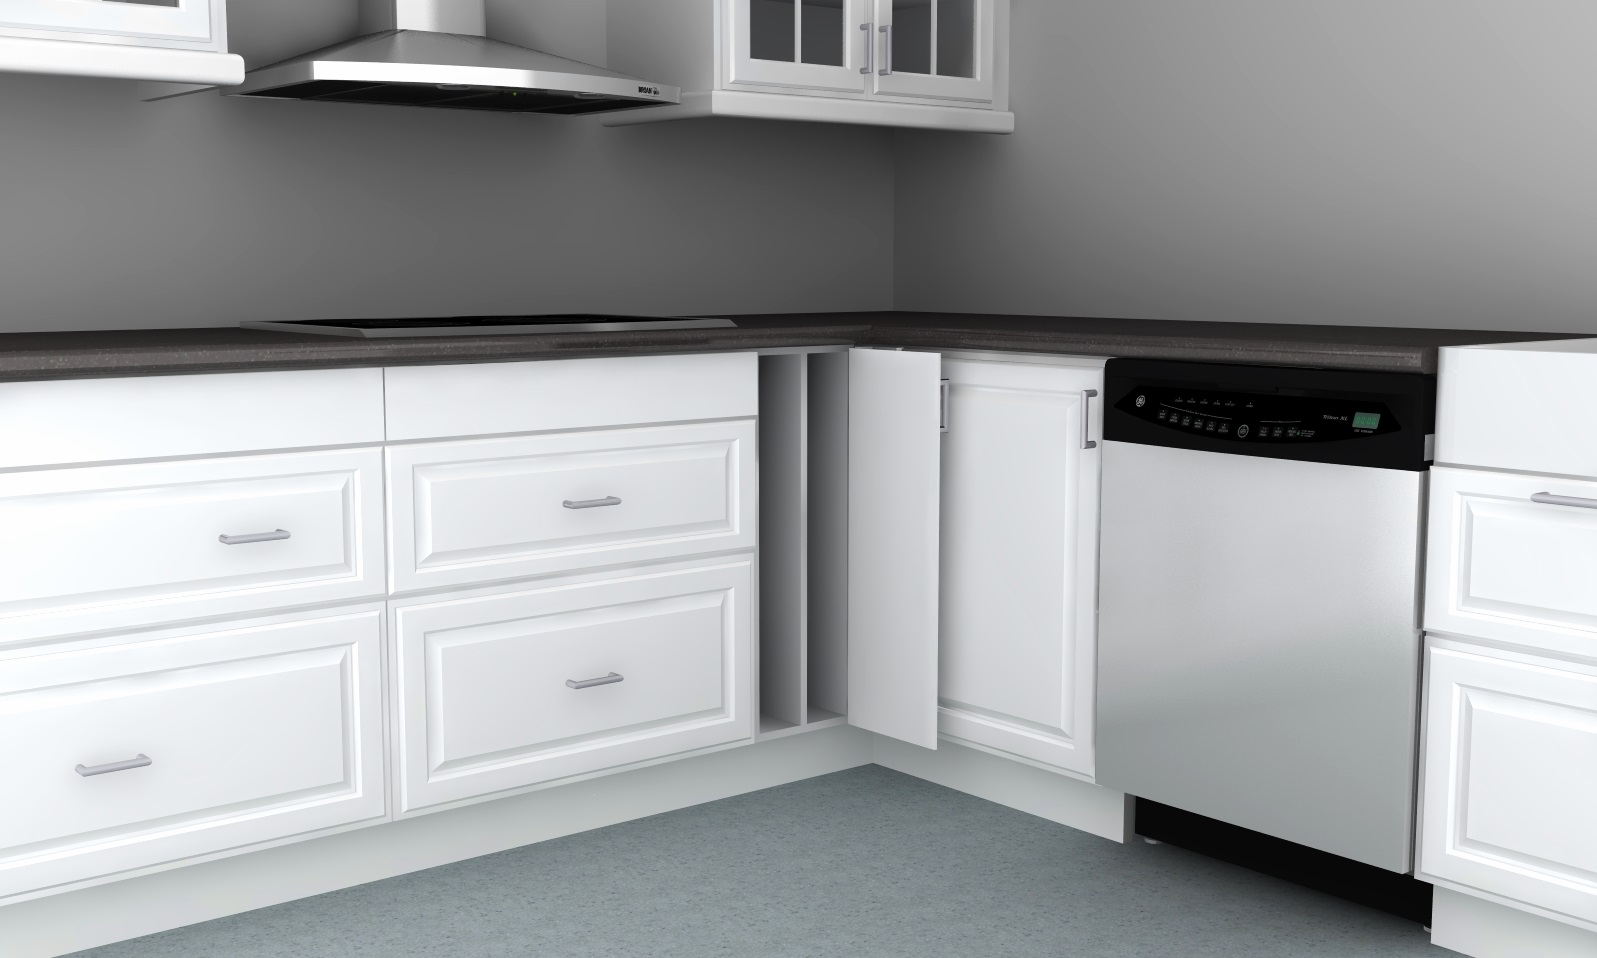 ikea kitchen cabinet hack this ikea kitchen is for you cookie bakers 17629